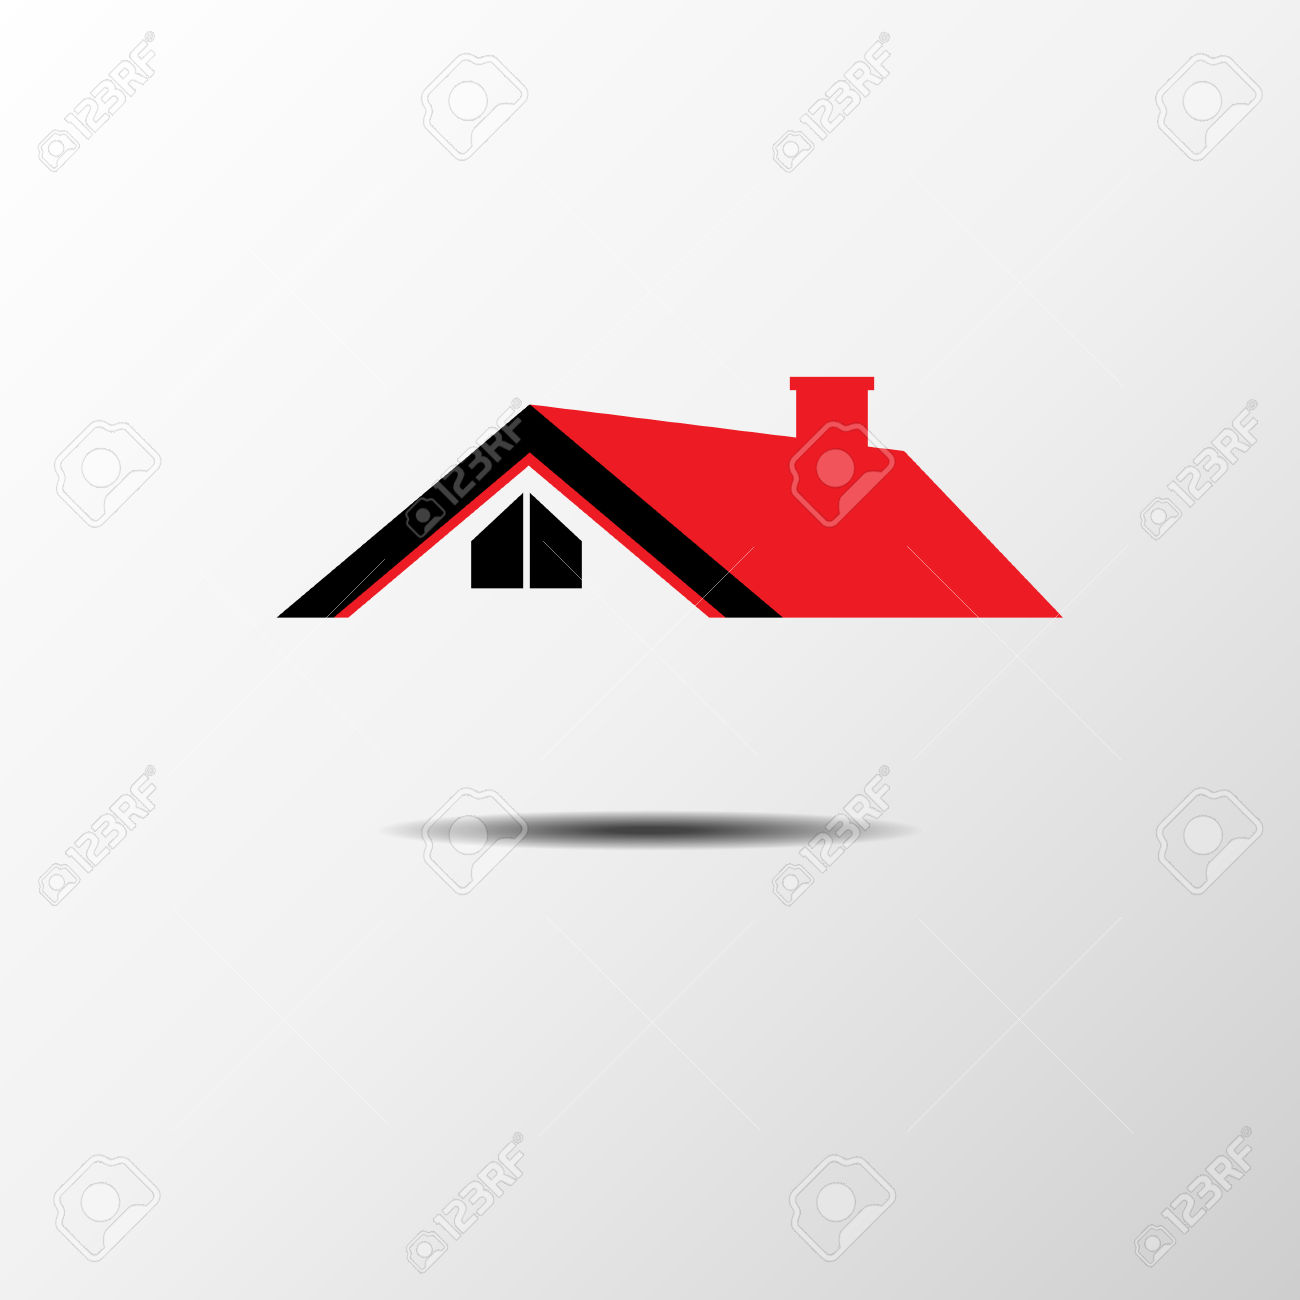 Casa Real Estate Techo Rojo Ilustraciones Vectoriales, Clip Art.